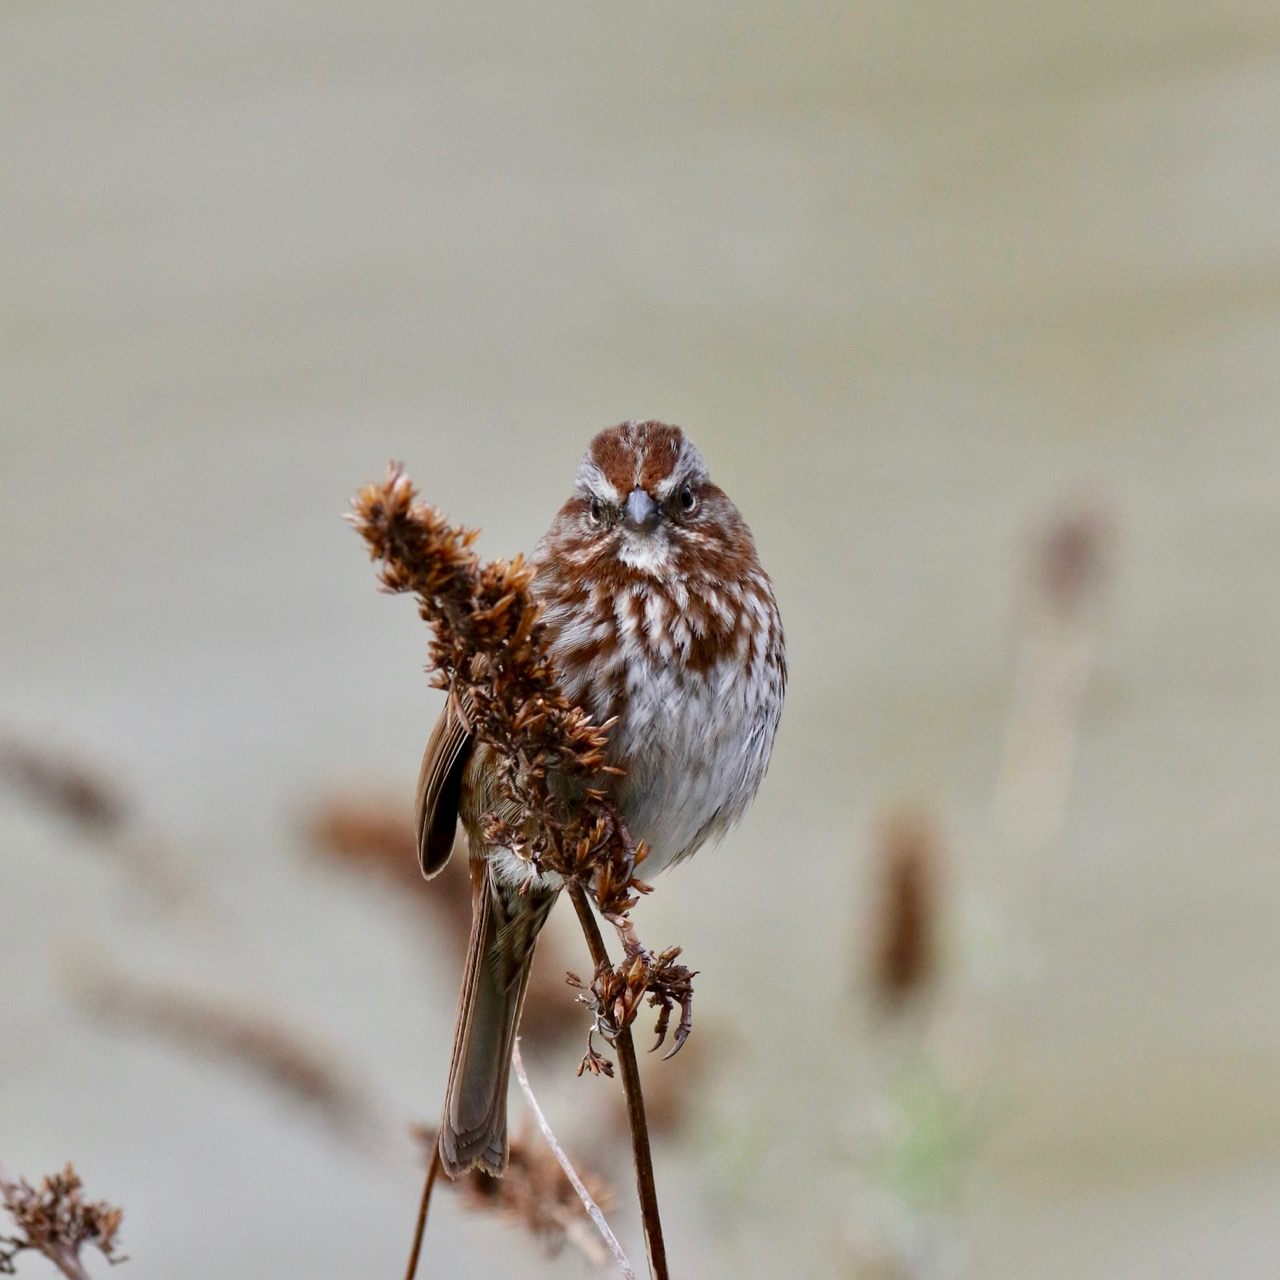 Song sparrow in Spring plumage, New Westminster B.C.